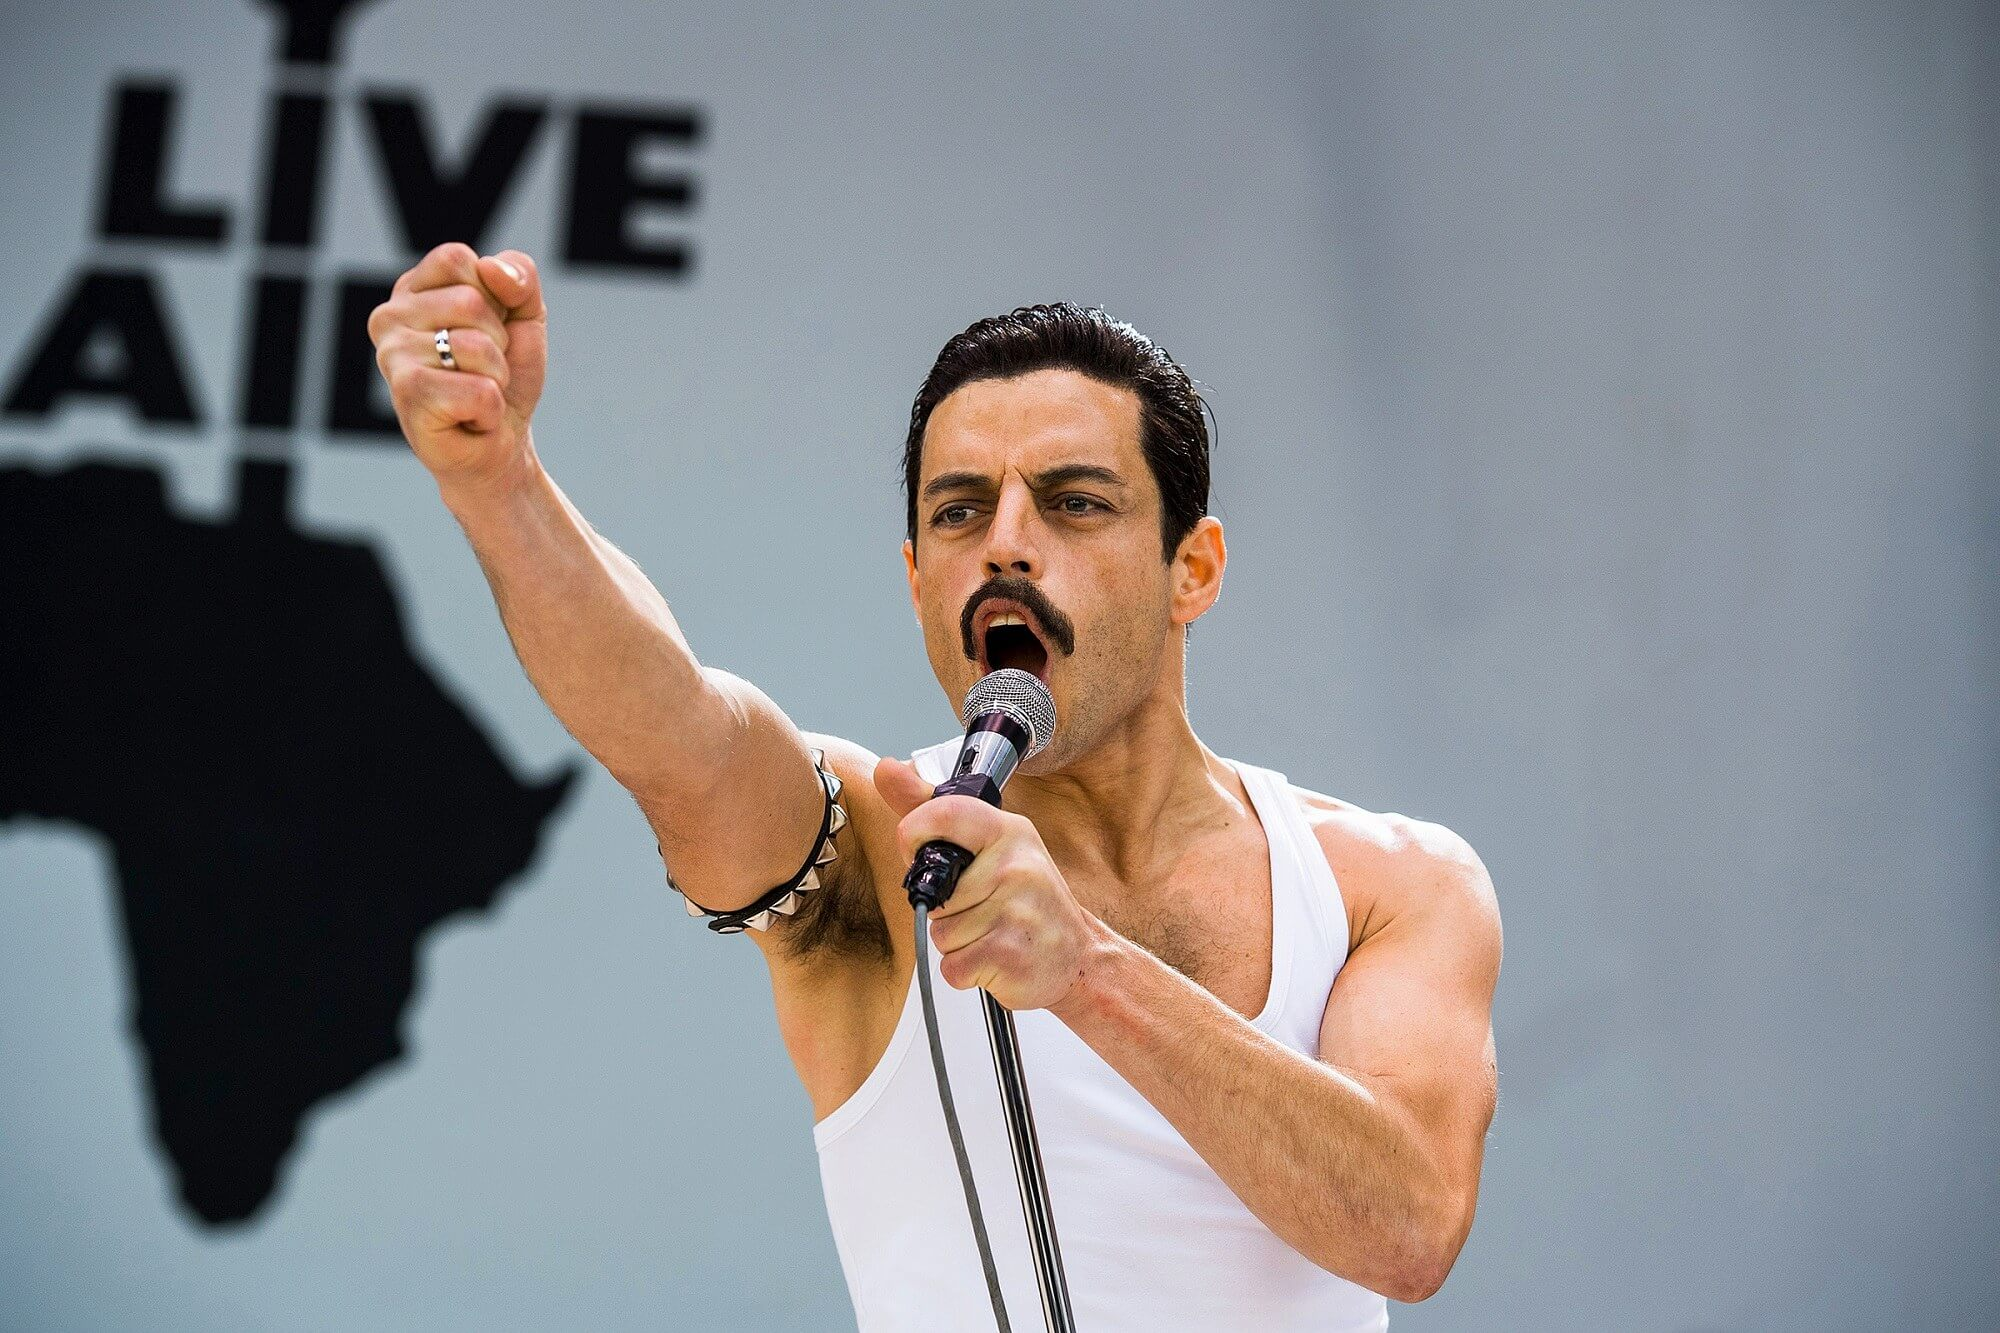 Bohemian Rhapsody home entertainment release to feature full Live Aid recreation